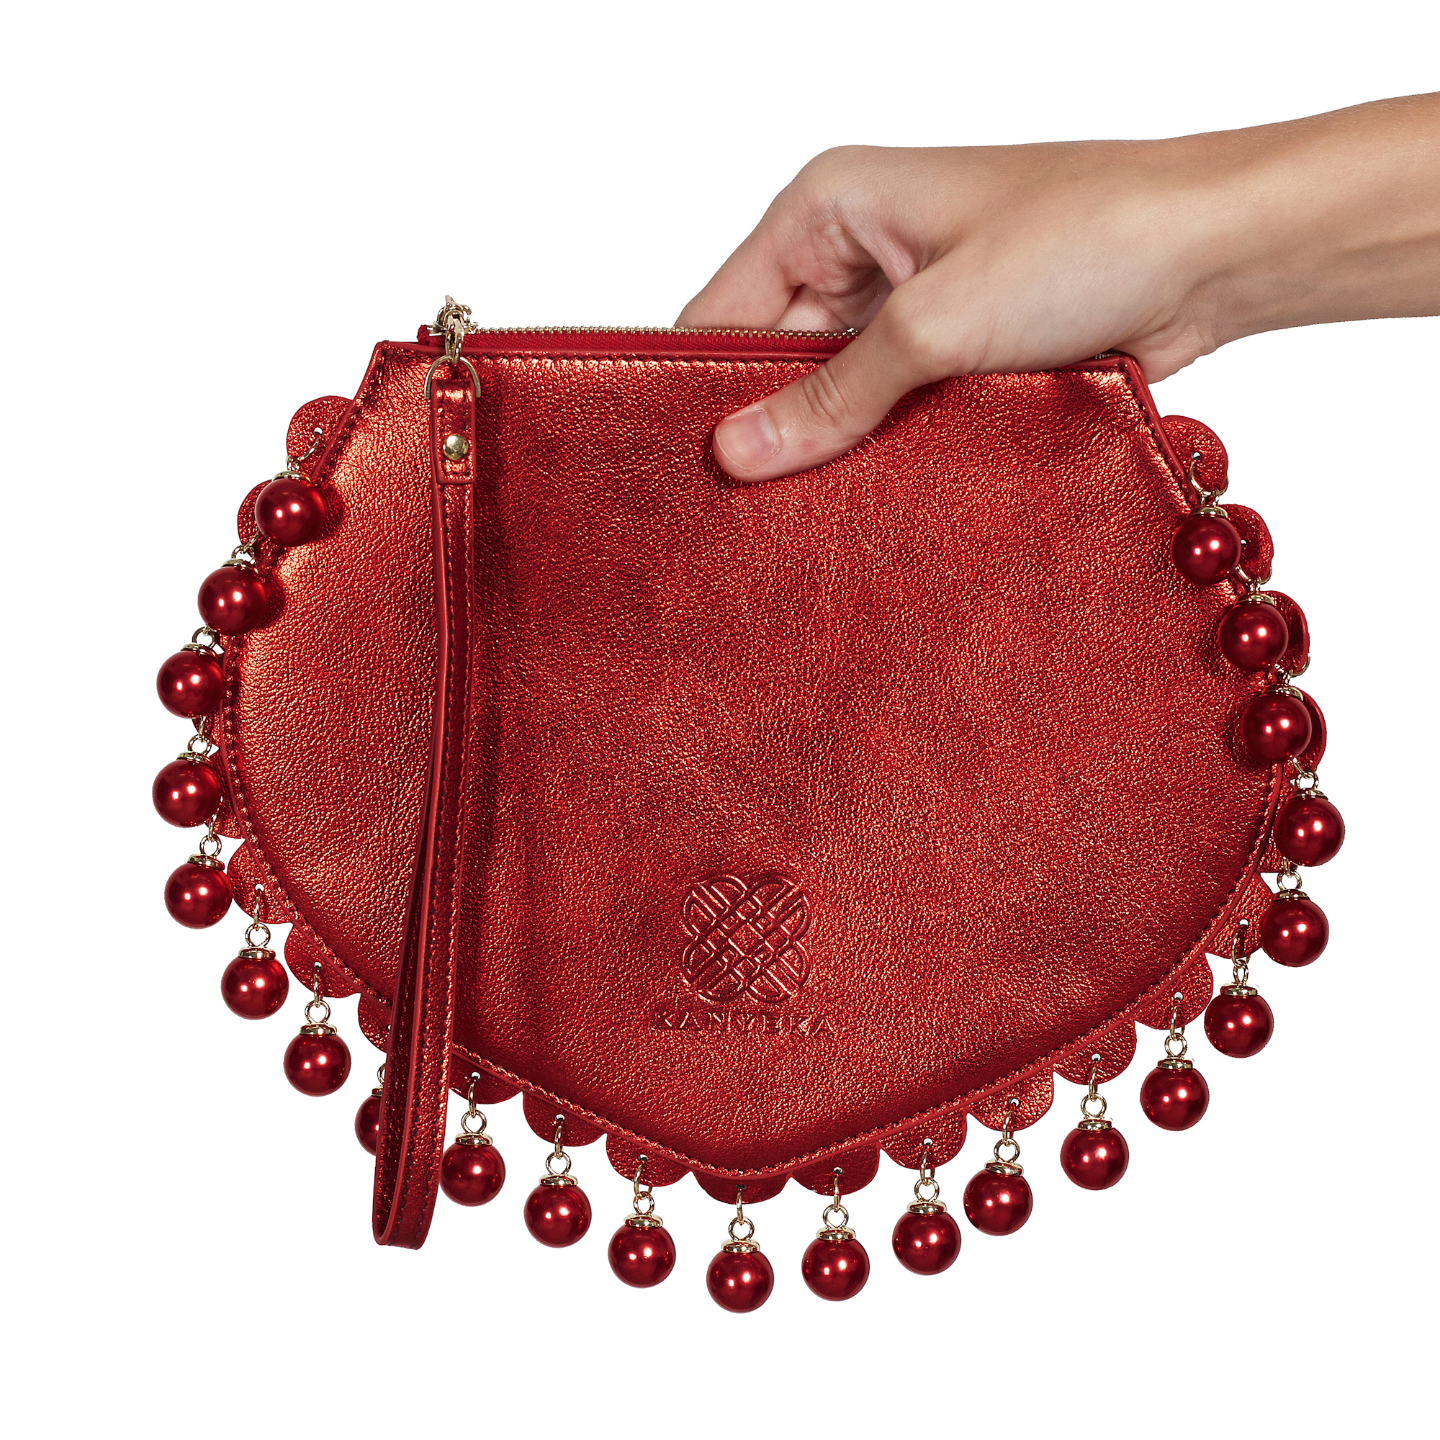 CHARMAINE red sharp clutch bag